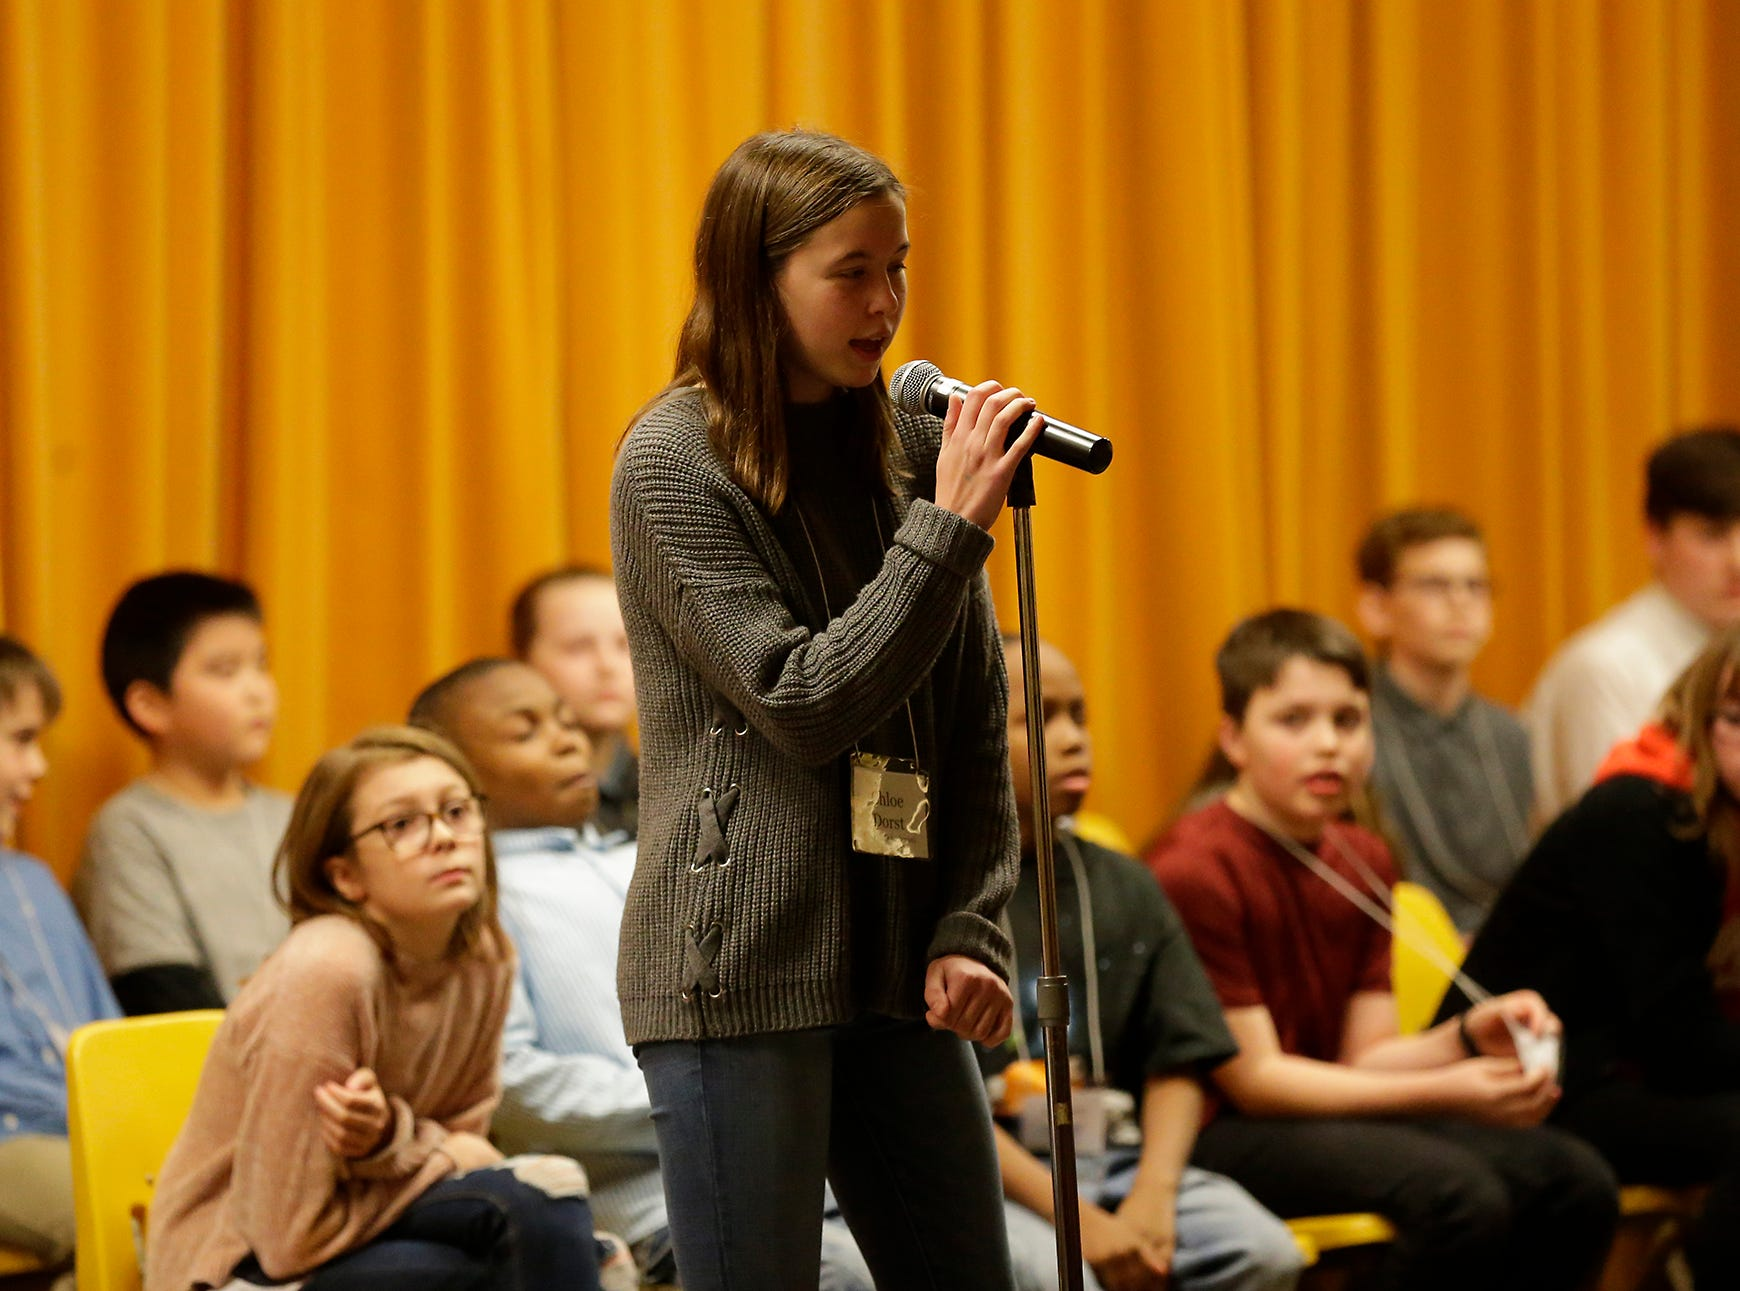 Cgloe Dorst of St. Peters school competes in the Fond du Lac citywide spelling bee Tuesday, February 26, 2019 at These Middle School in Fond du Lac, Wis. Doug Raflik/USA TODAY NETWORK-Wisconsin